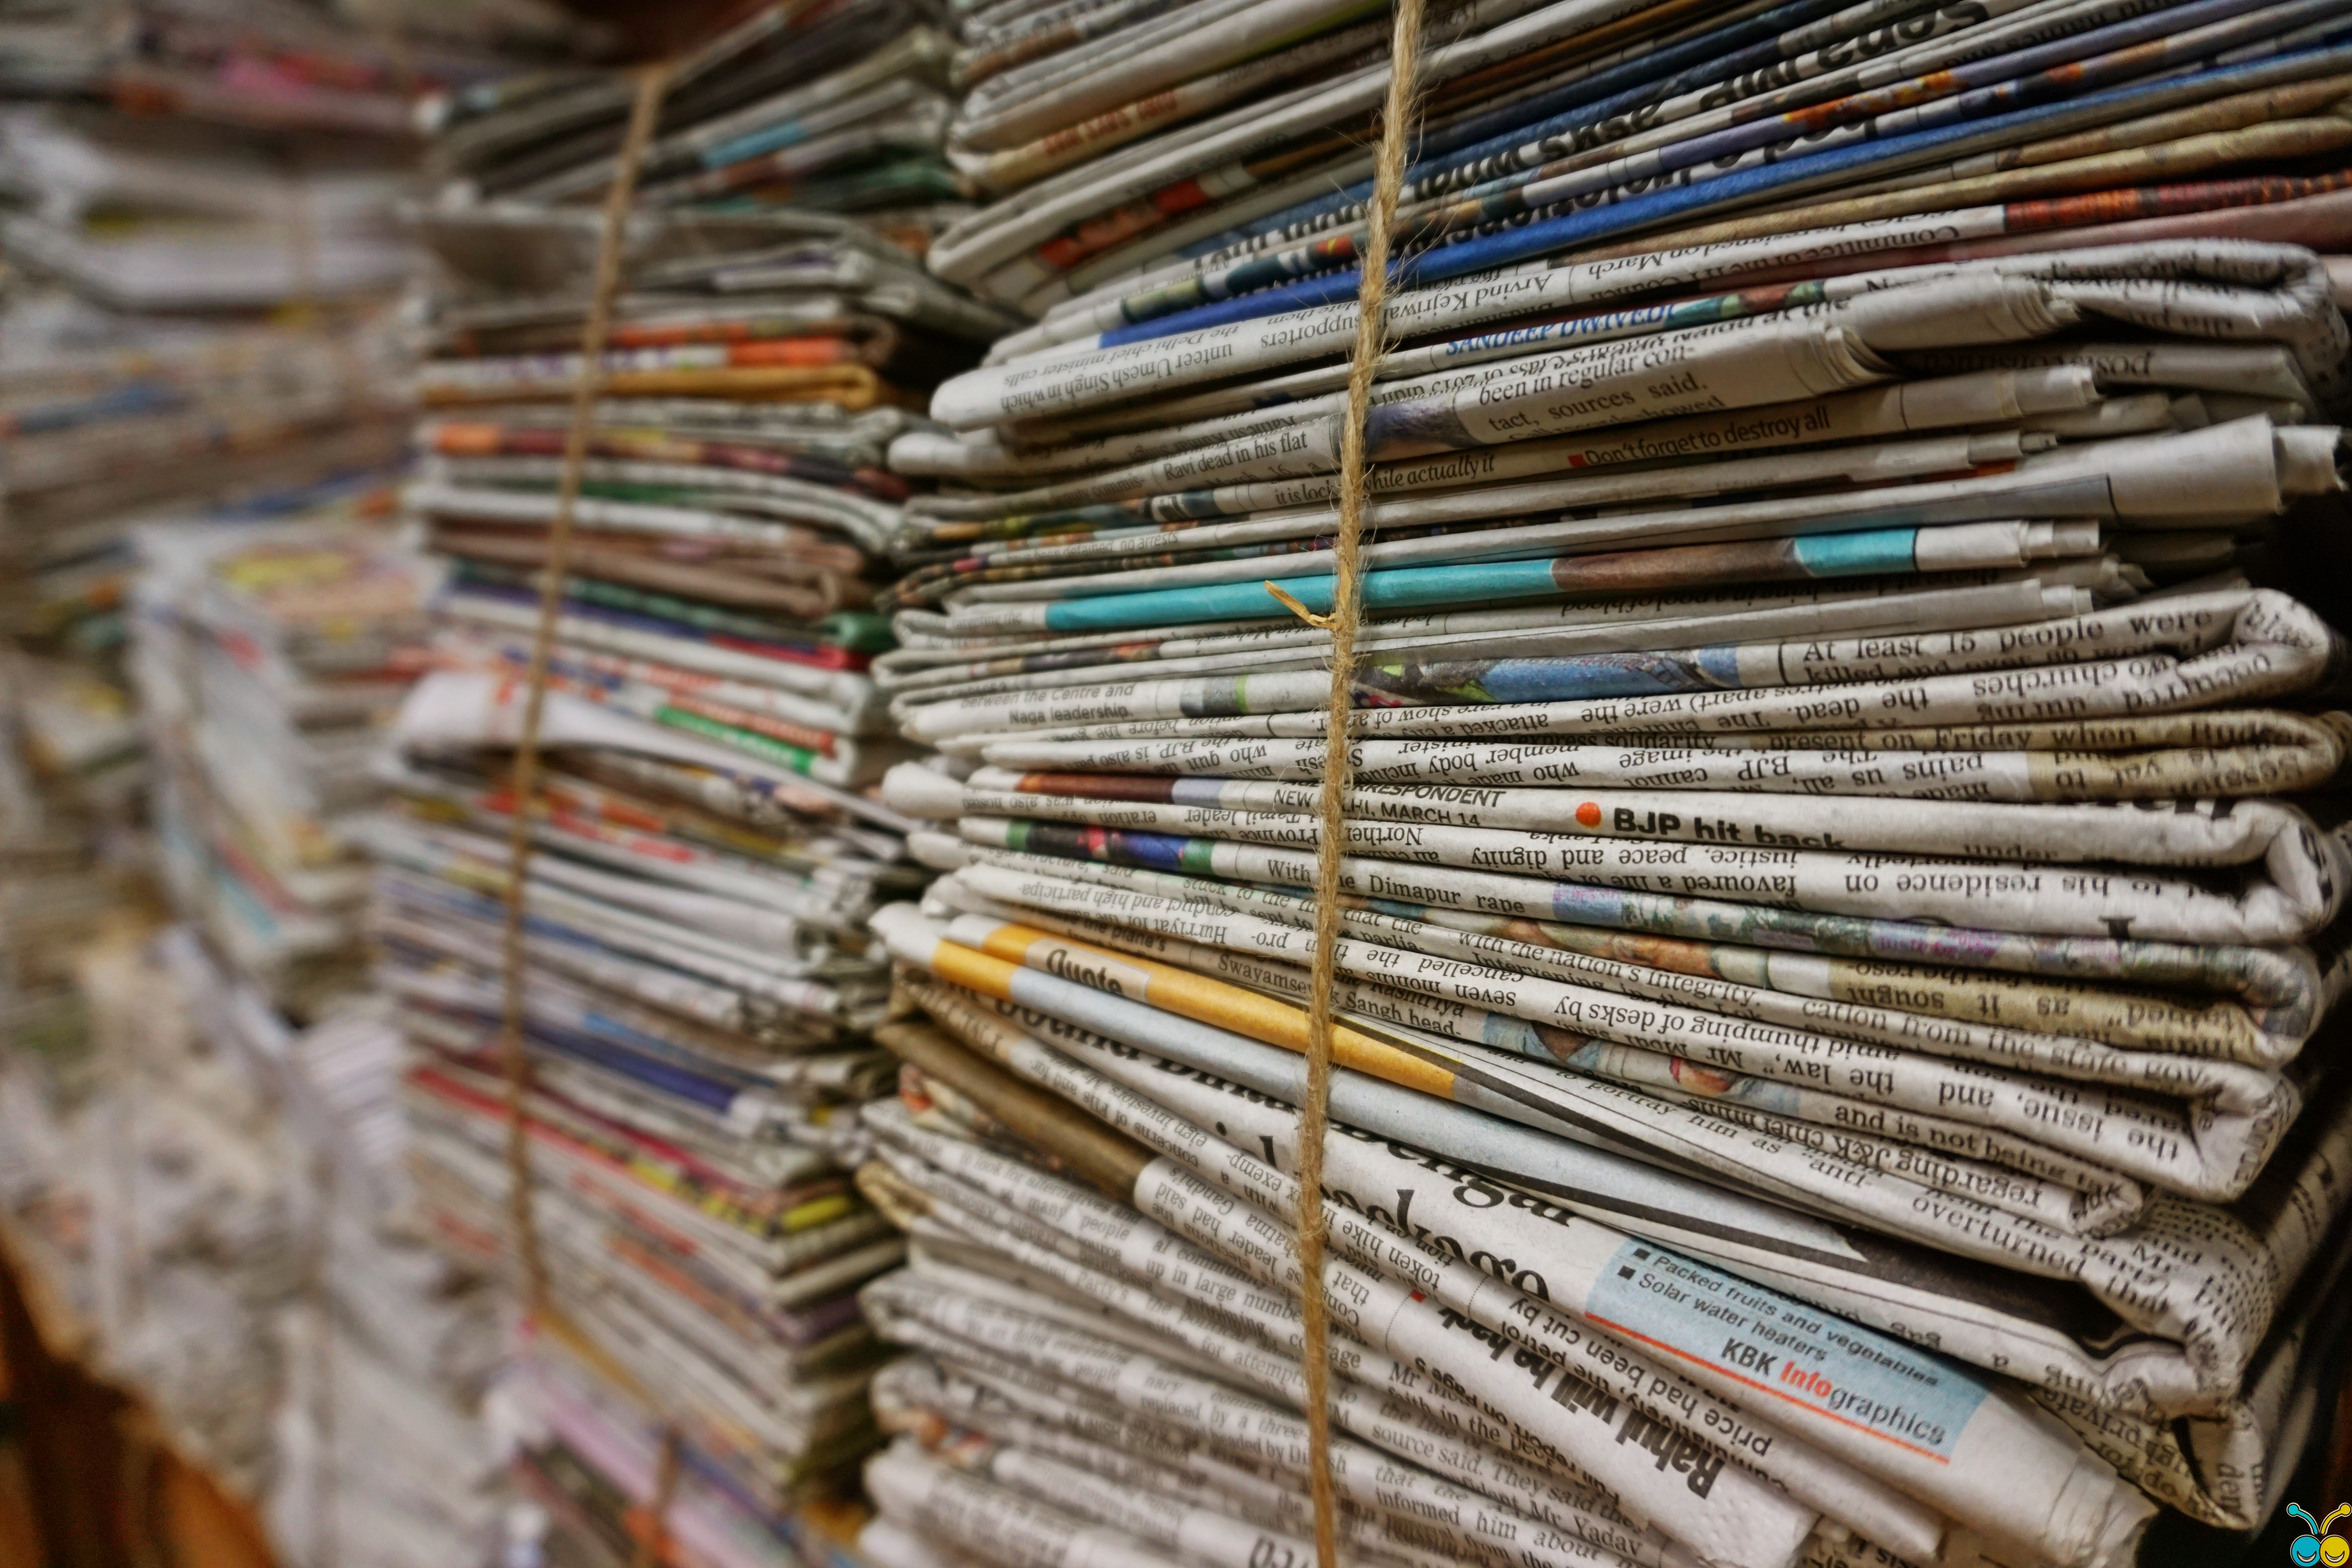 Newspaper stacks to show that some items are weather sensitive.